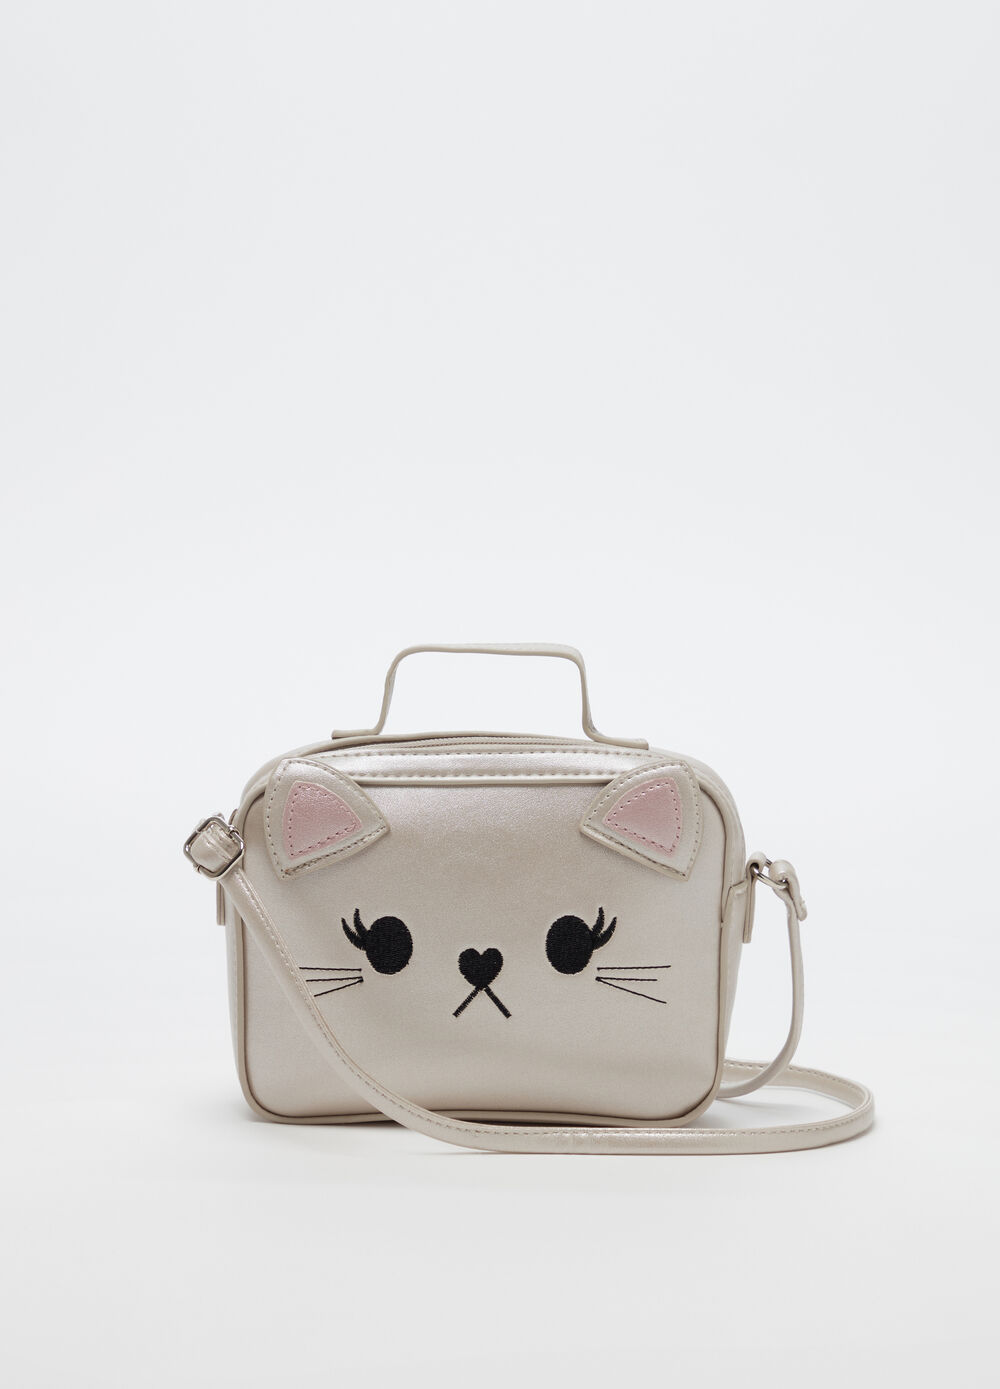 Shoulder bag with cat motif